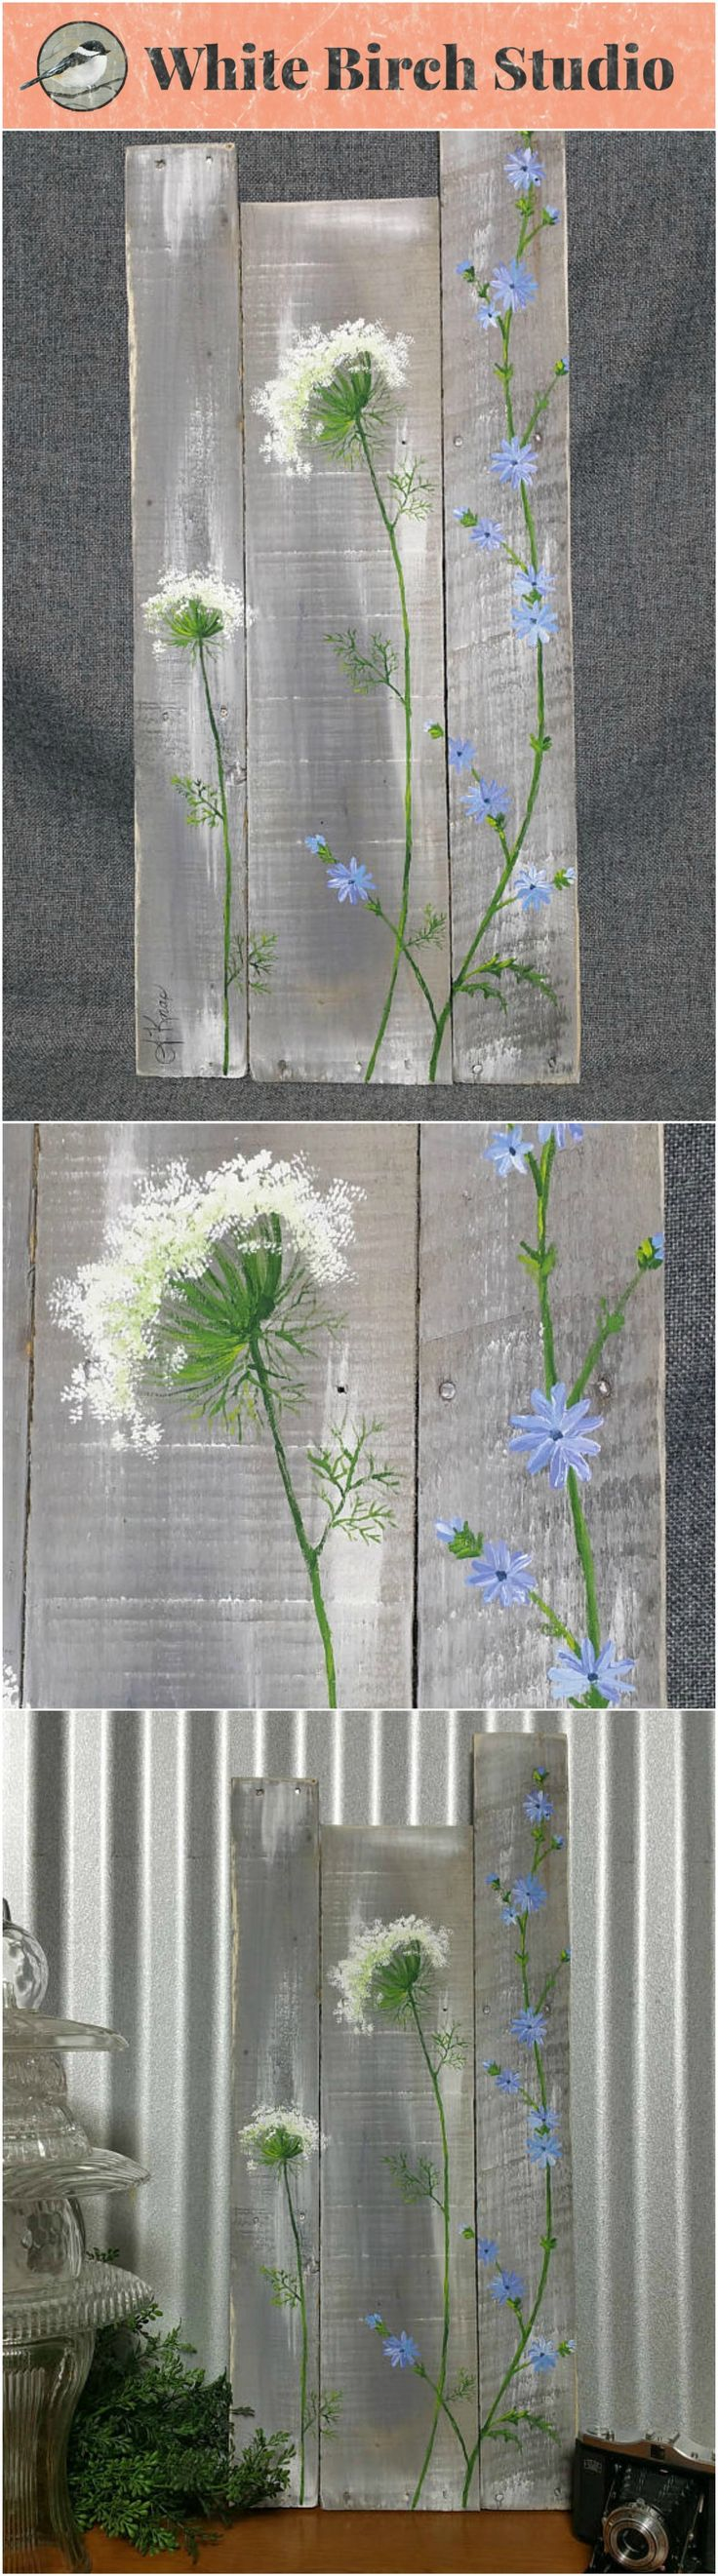 Pallet wall art, wild flowers greenery, Farmhouse decor, gray aged wood, hand painted flowers, Queen Ann Lace, Rustic shabby, Reclaimed   This gray and white-washed piece would be a great, personal touch to your Spring and Summer decor at home or at your cottage.